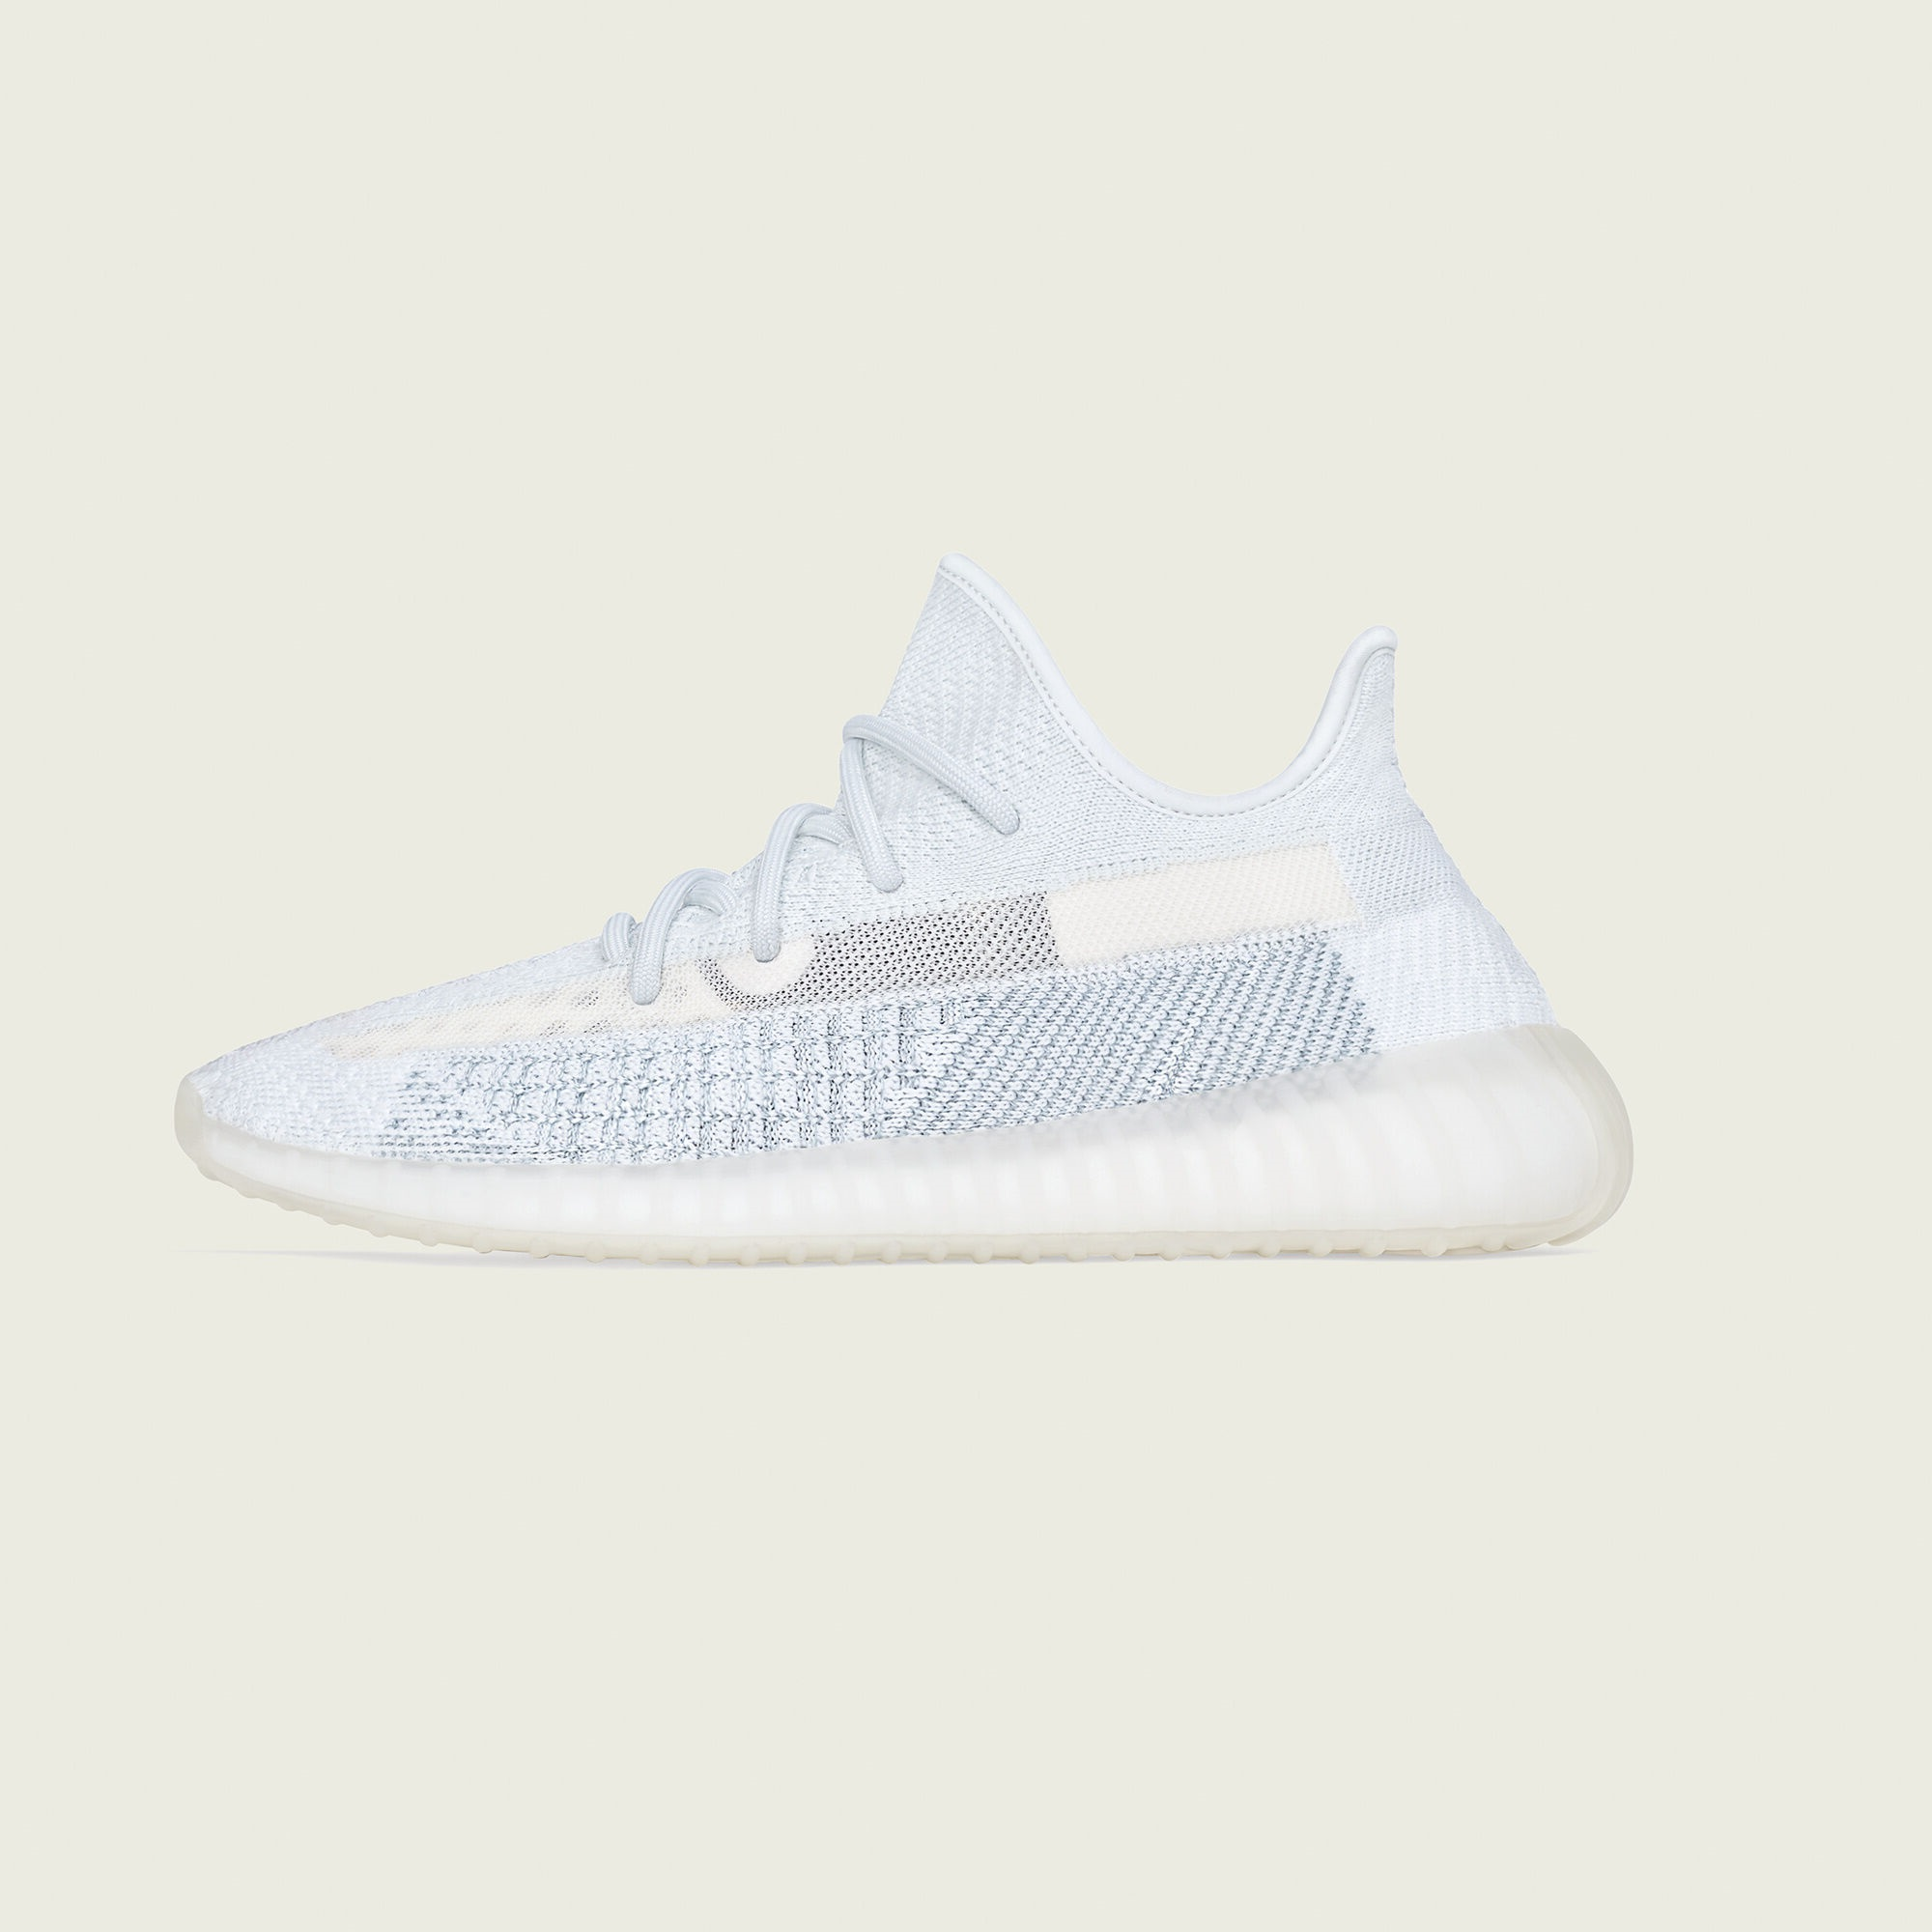 02-adidas-yeezy-boost-350-v2-cloud-white-non-reflective-fw3043